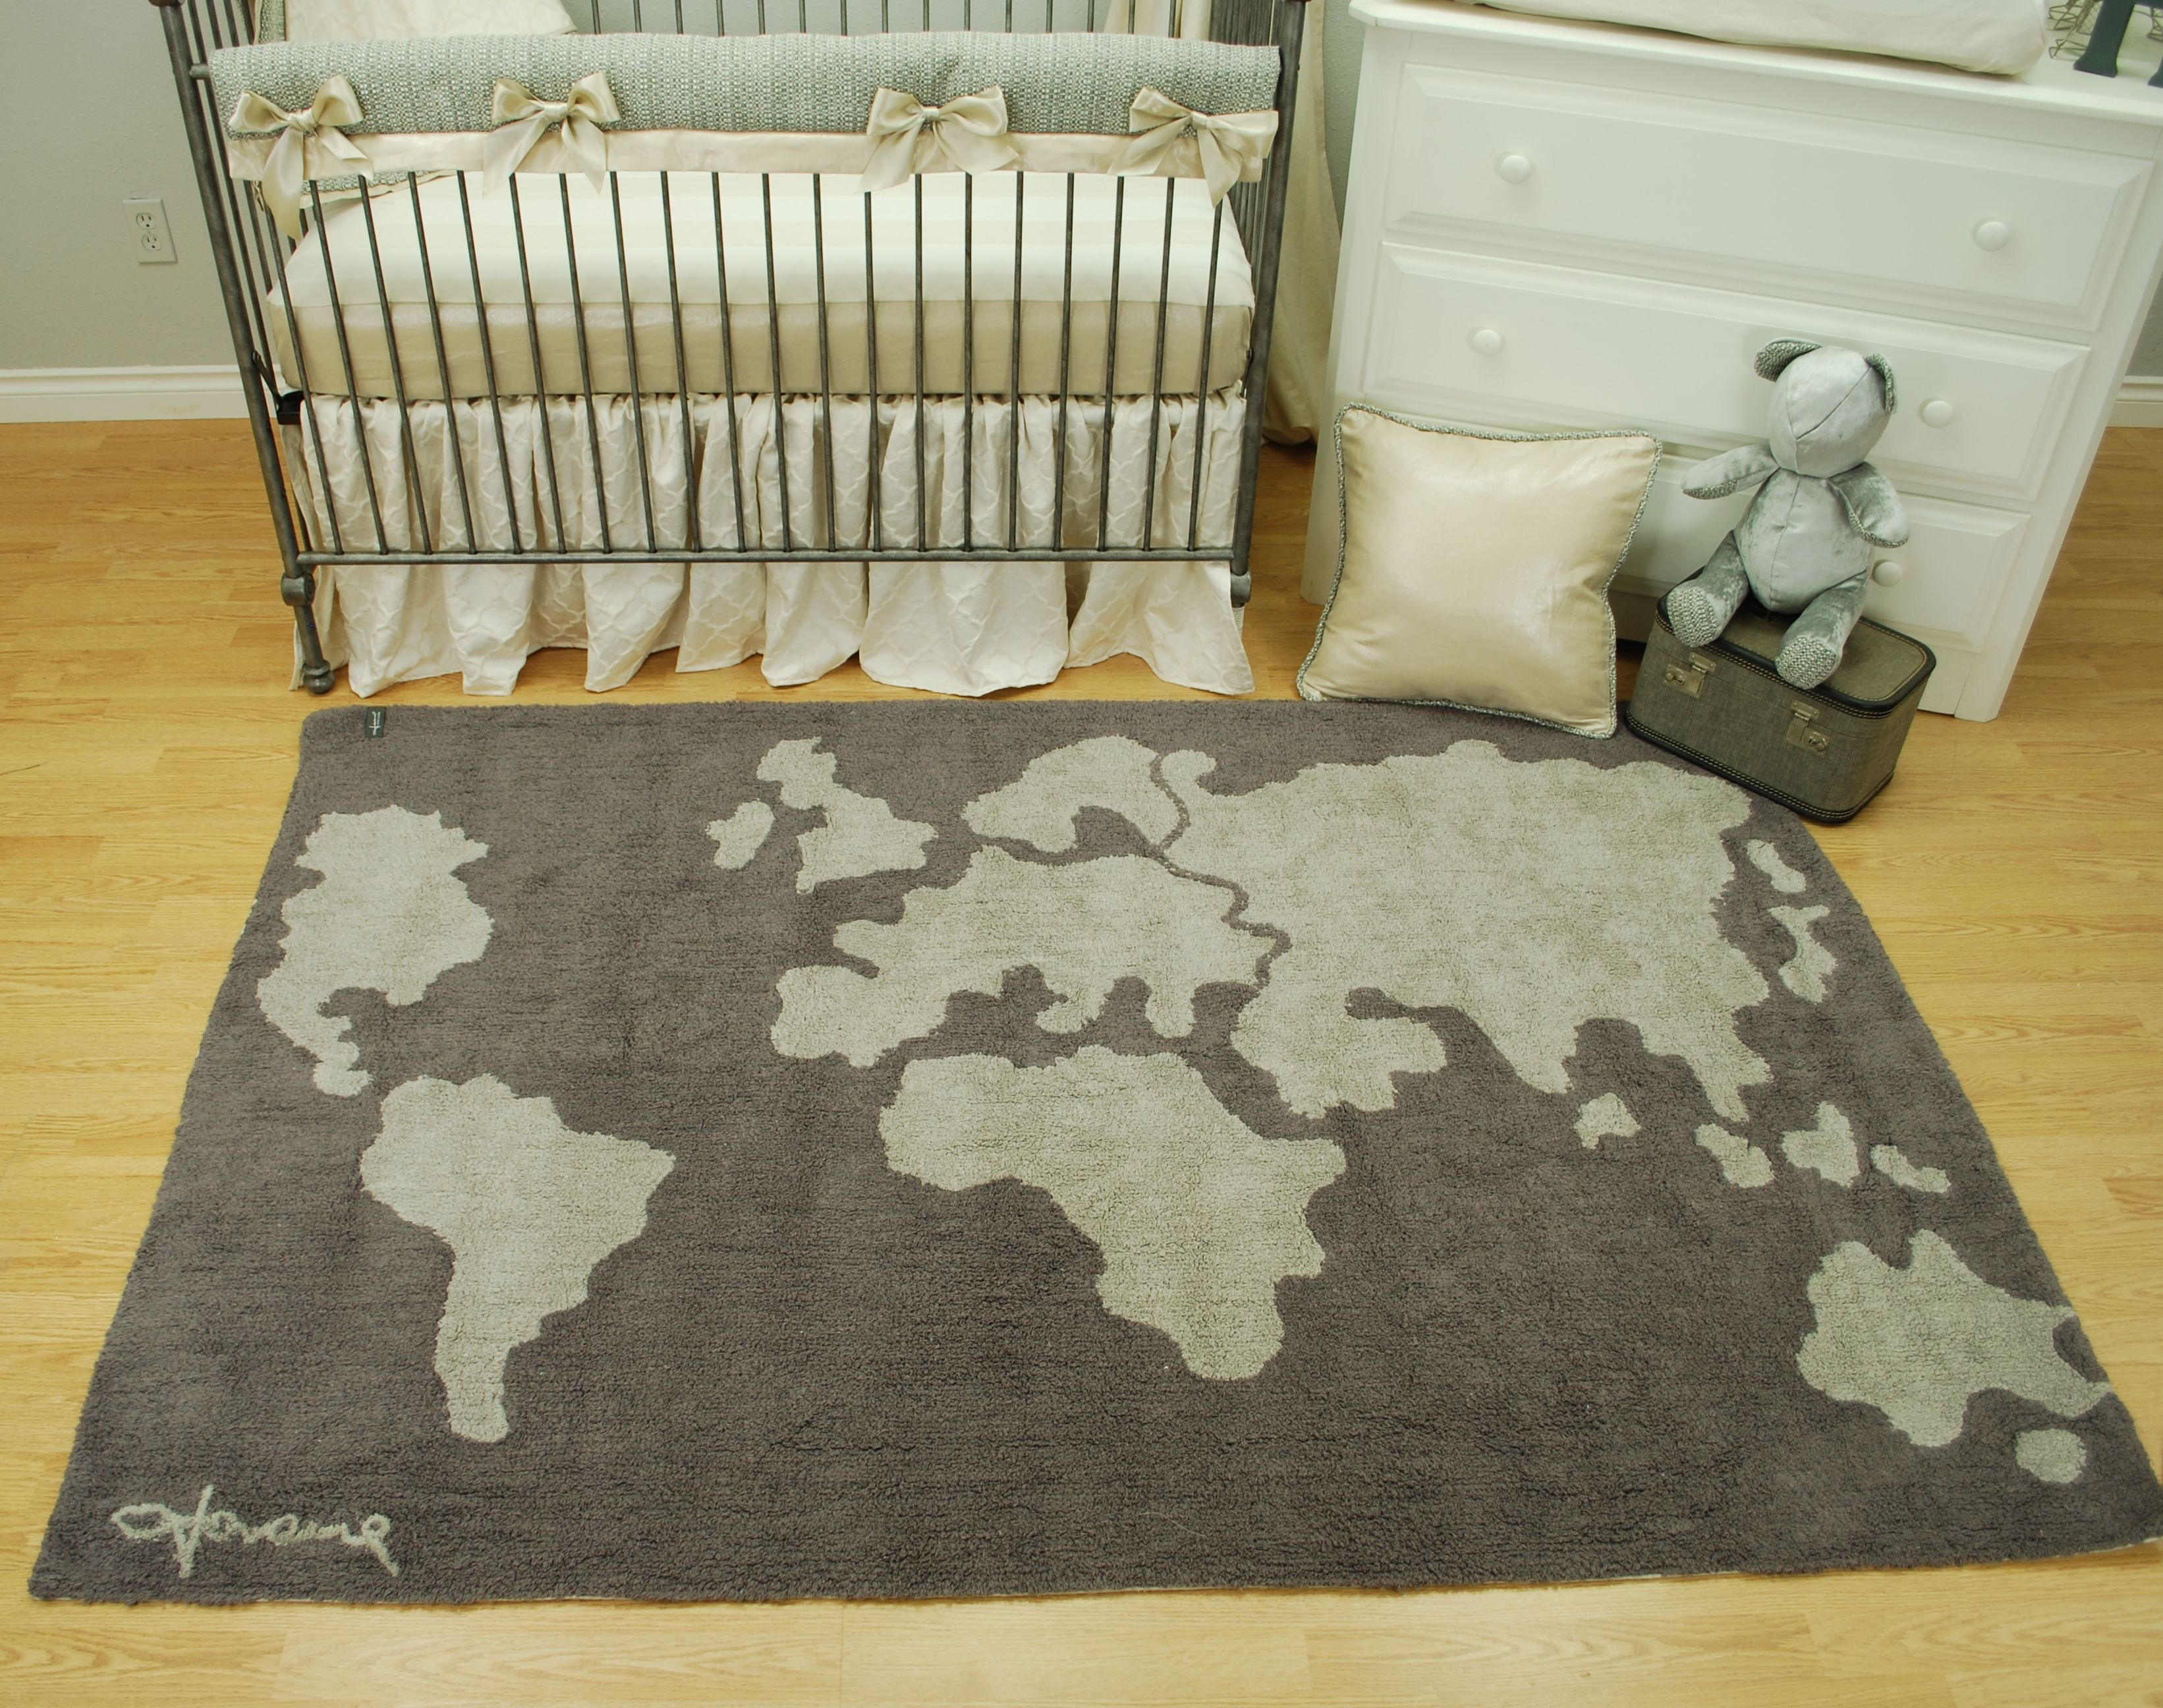 Shimmery grey crib bedding set by pine creek bedding with a world shimmery grey crib bedding set by pine creek bedding with a world map rug by lorena publicscrutiny Image collections